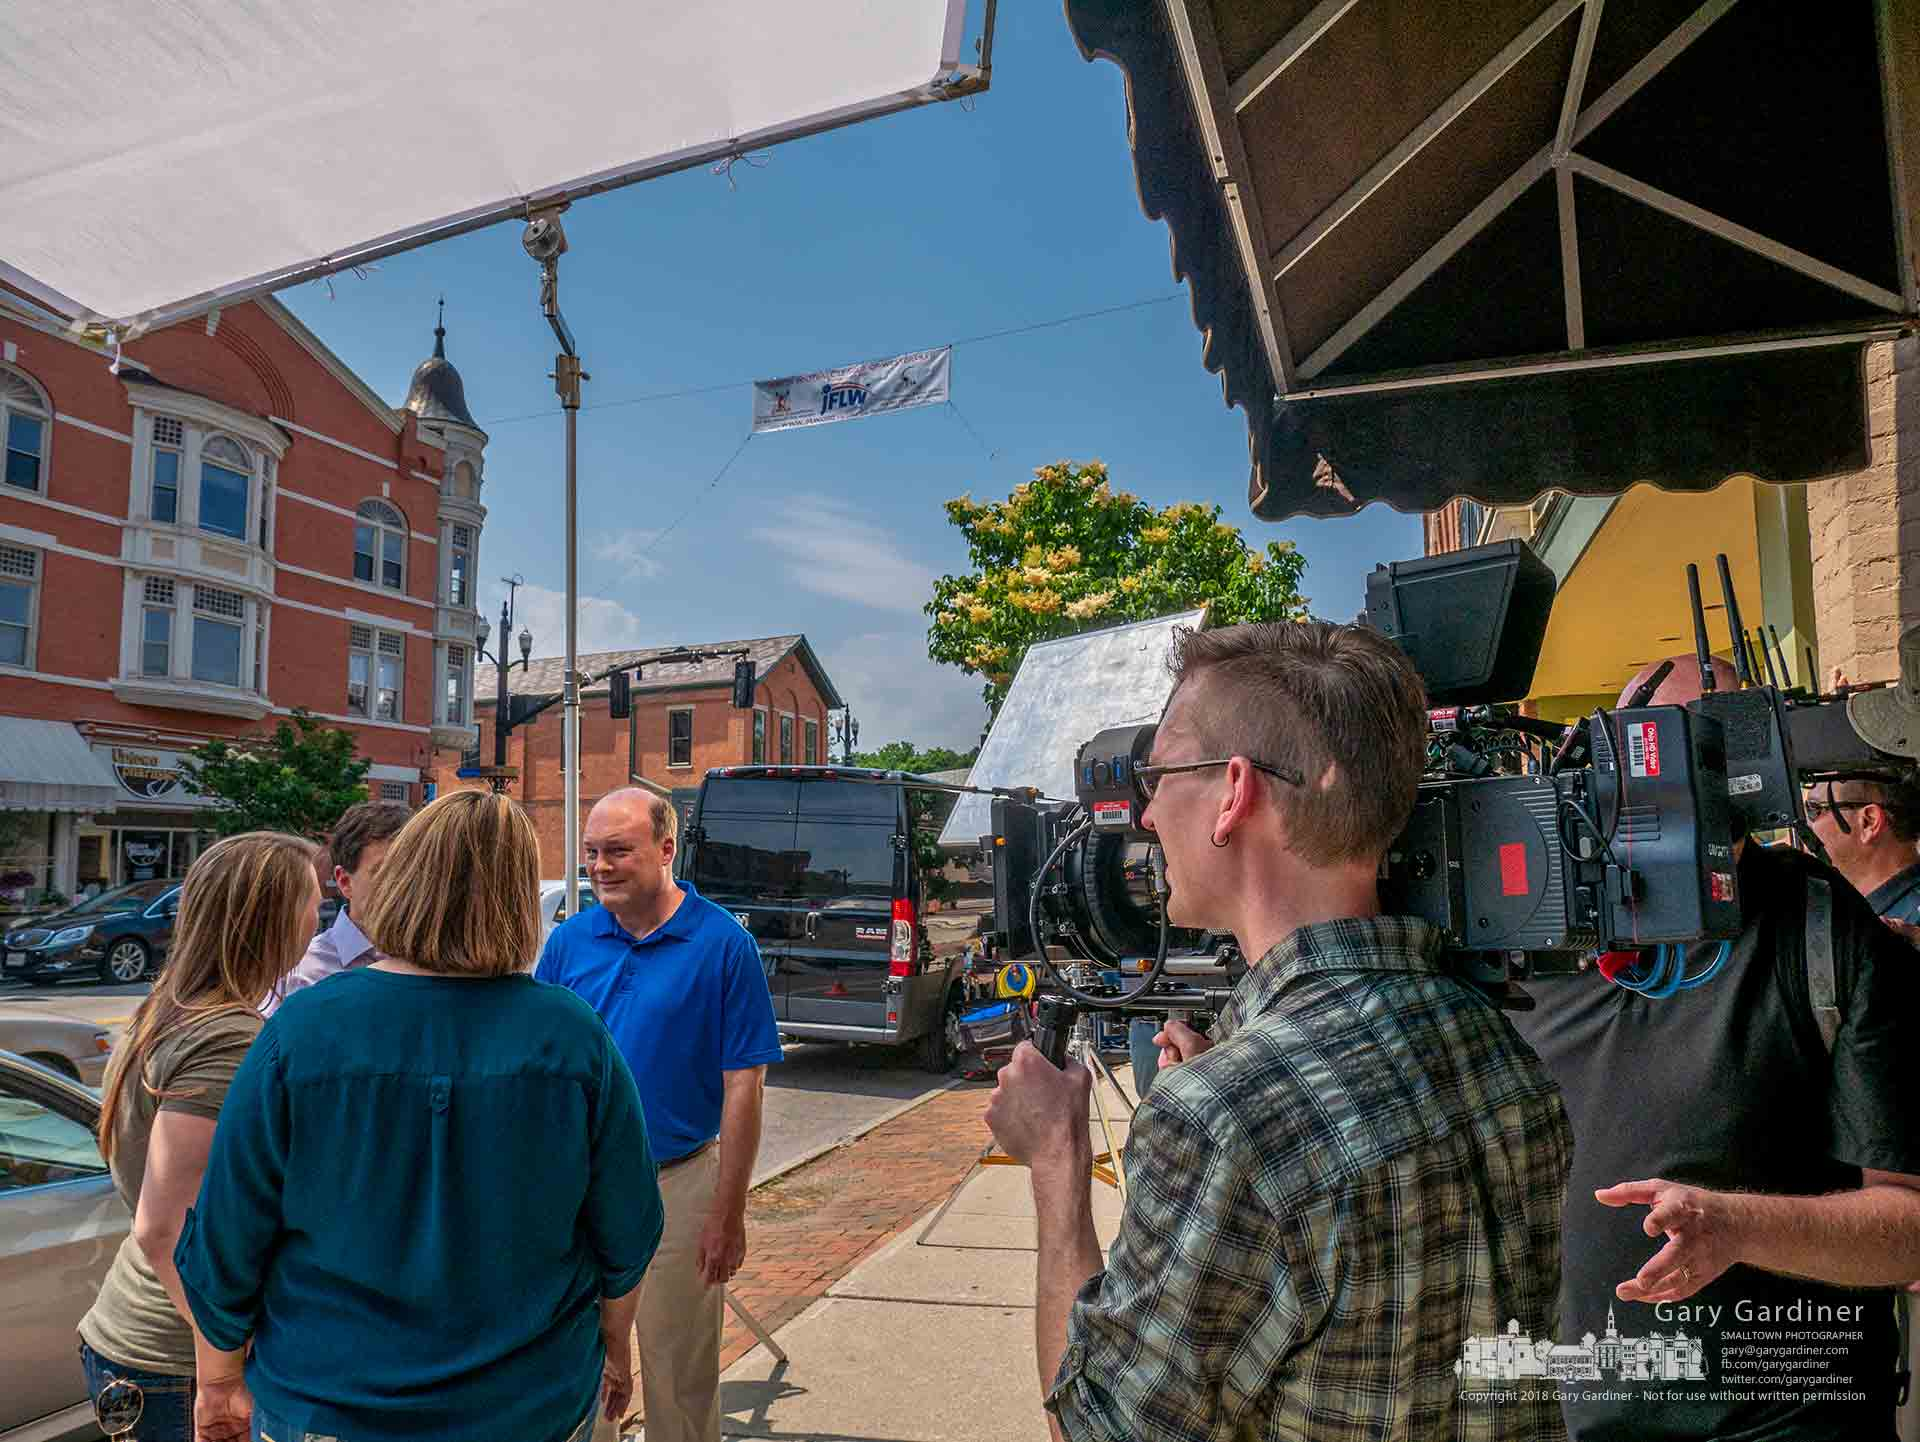 A video production crew records a portion of a congressional campaign ad in front of Pure Roots in Uptown Westerville. My Final Photo for June 7, 2018.